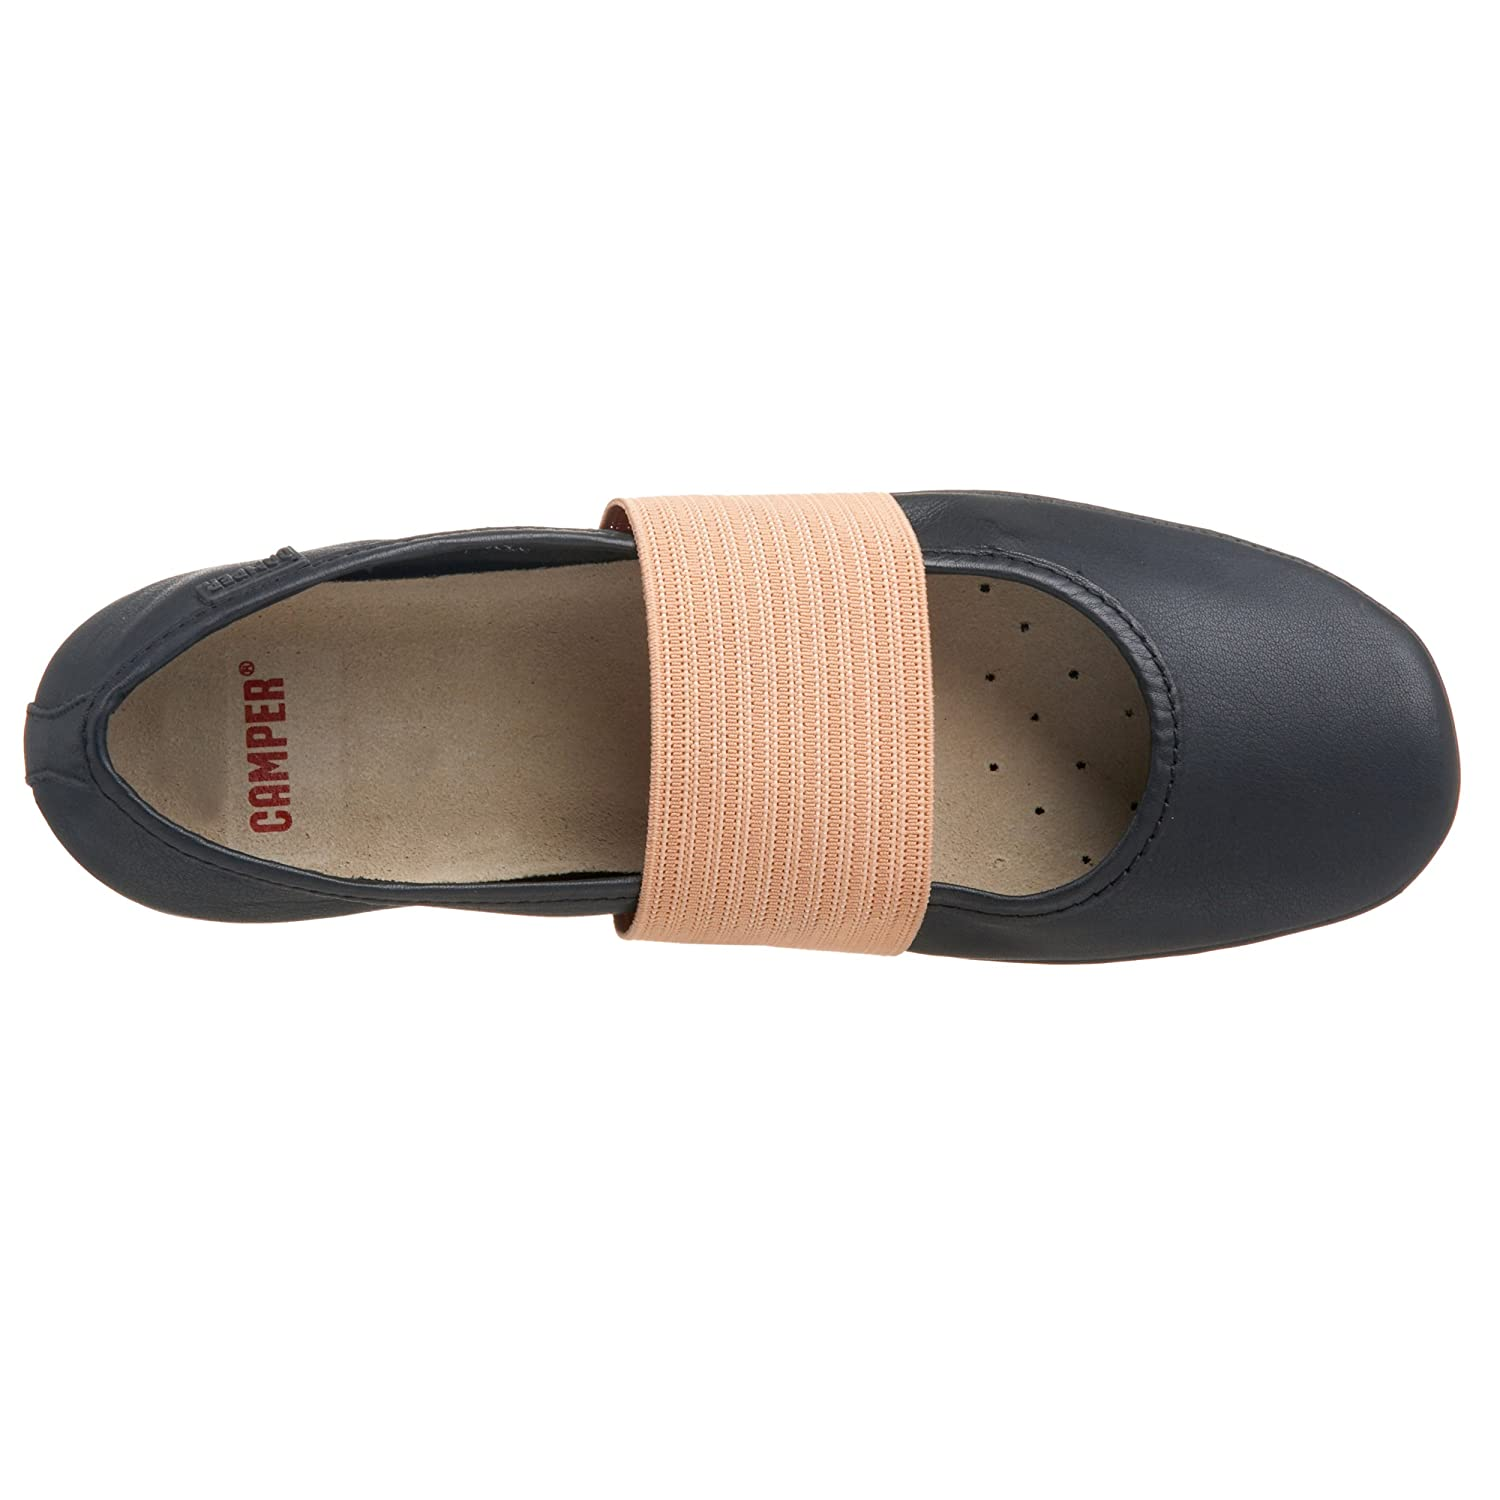 Camper Right Ballet Flat Free Overnight Shipping Return Shipping Endless com from endless.com